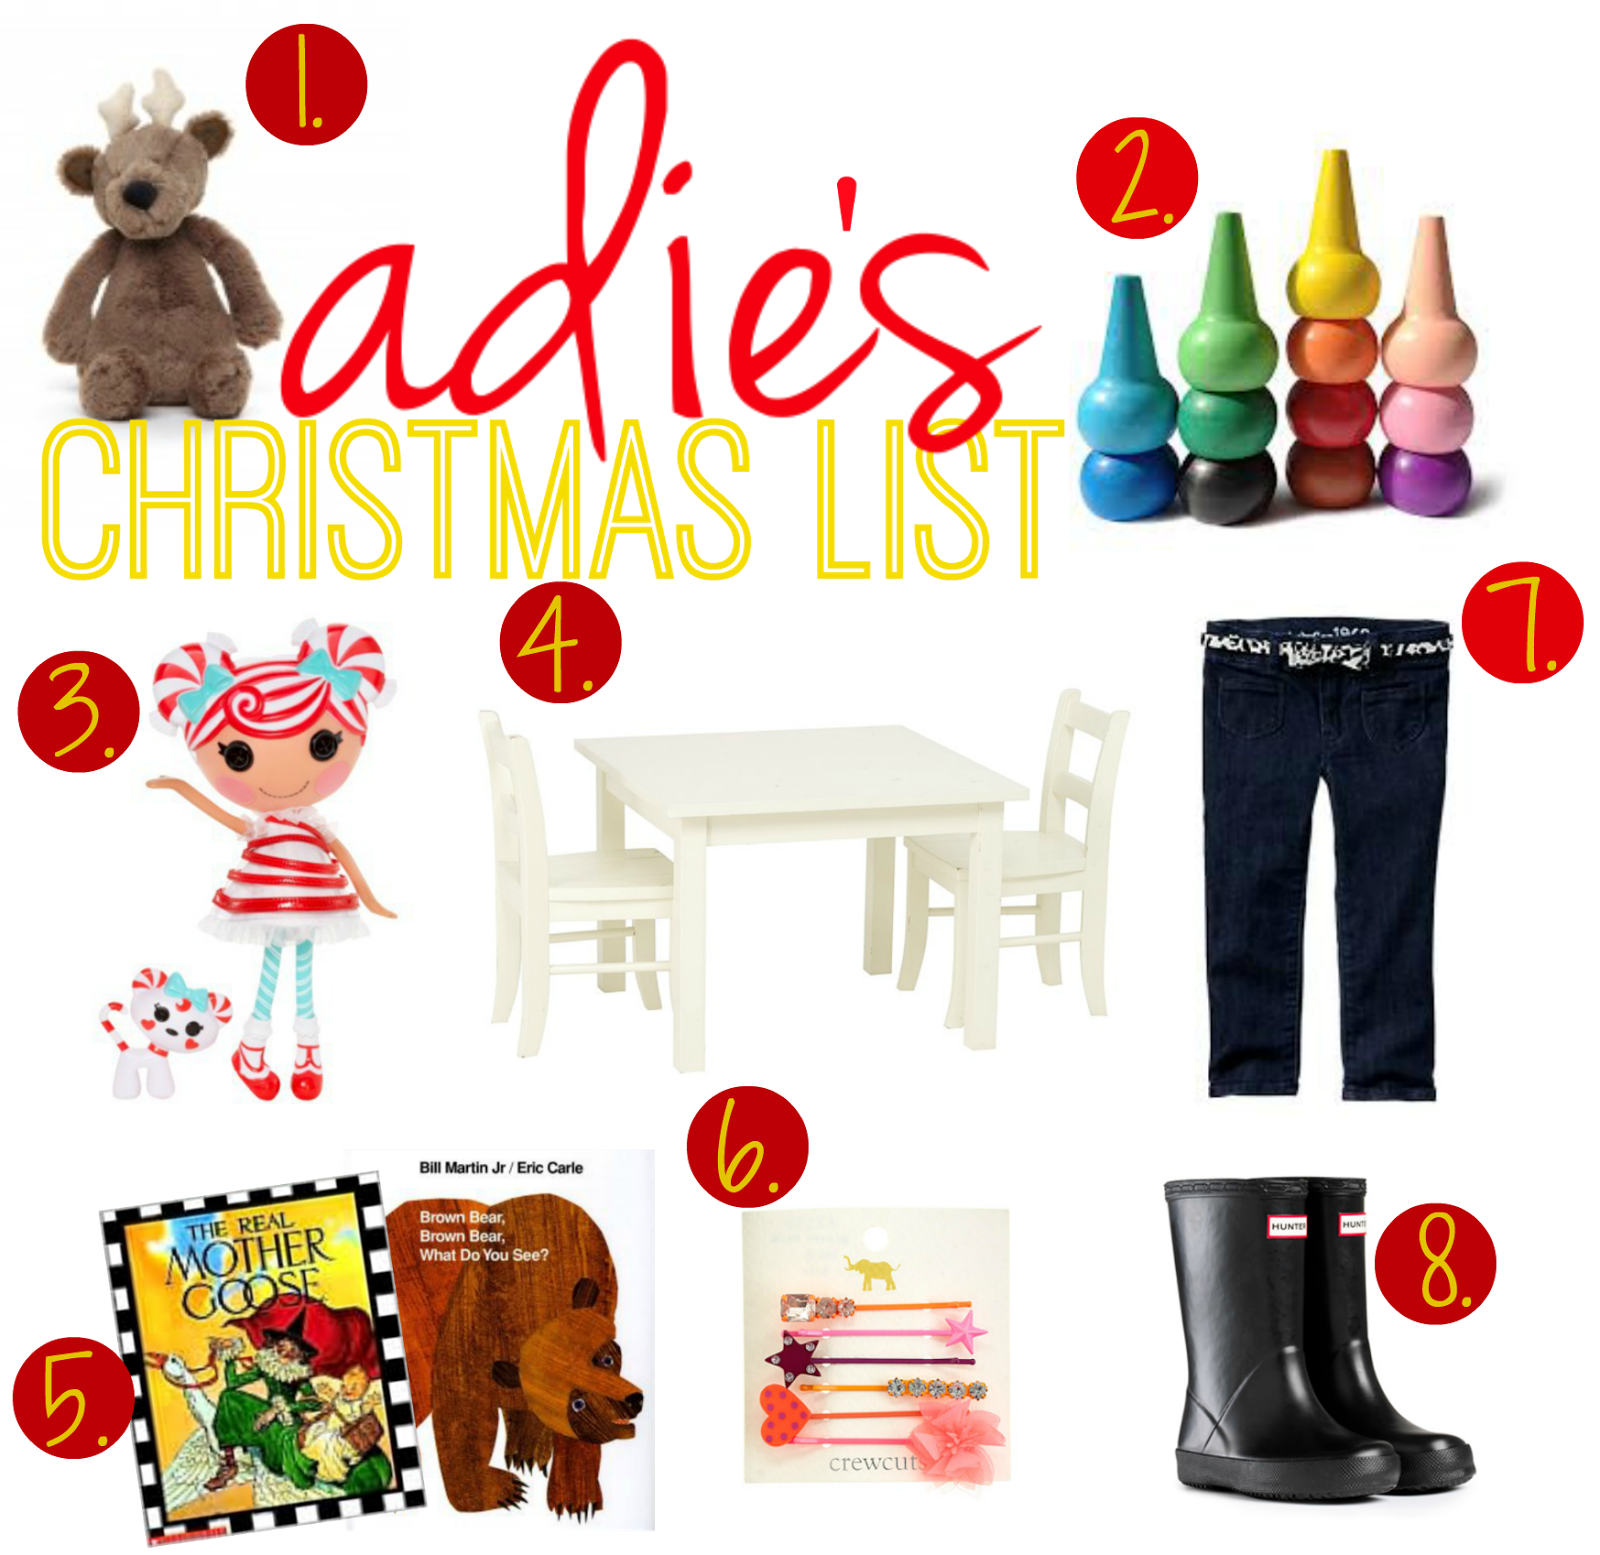 Christmas pajama party clipart banner black and white library Adie and Aden +: November 2013 banner black and white library